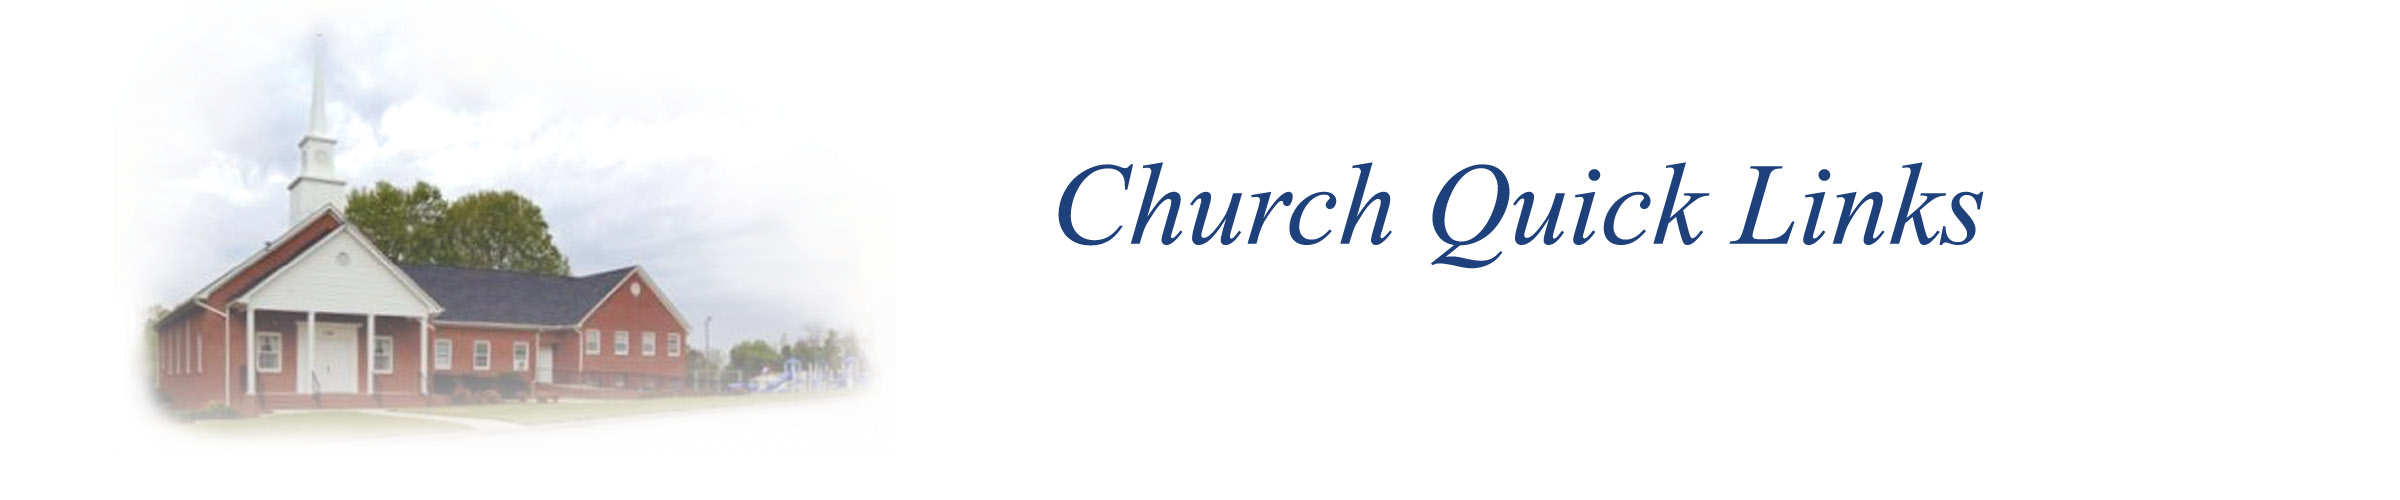 church - quick link icon